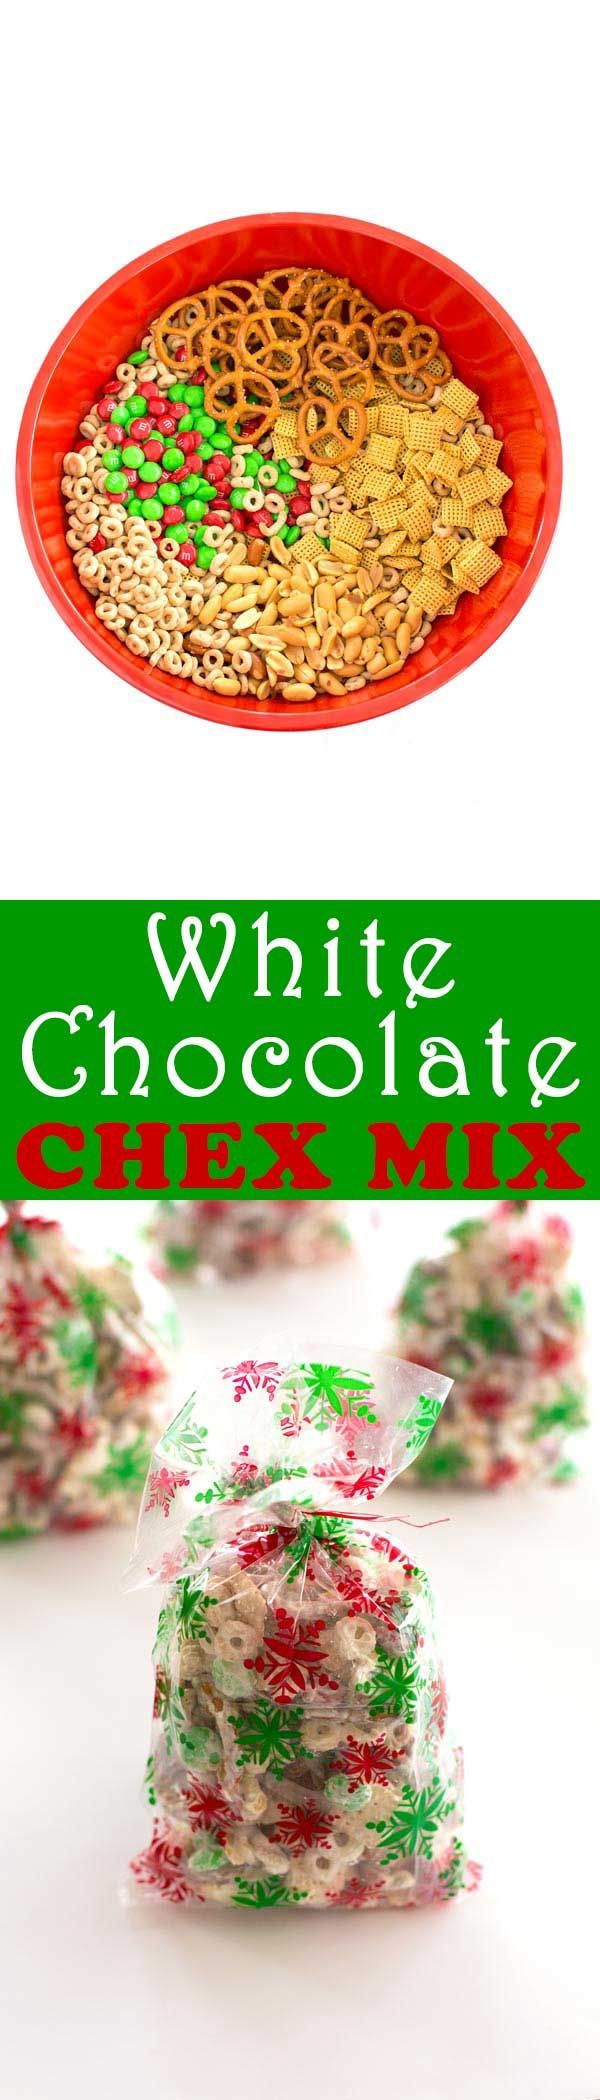 White Chocolate Chex Mix. Everyone loves this Christmas Chex mix with white chocolate, Cheerios, pretzels and peanuts!